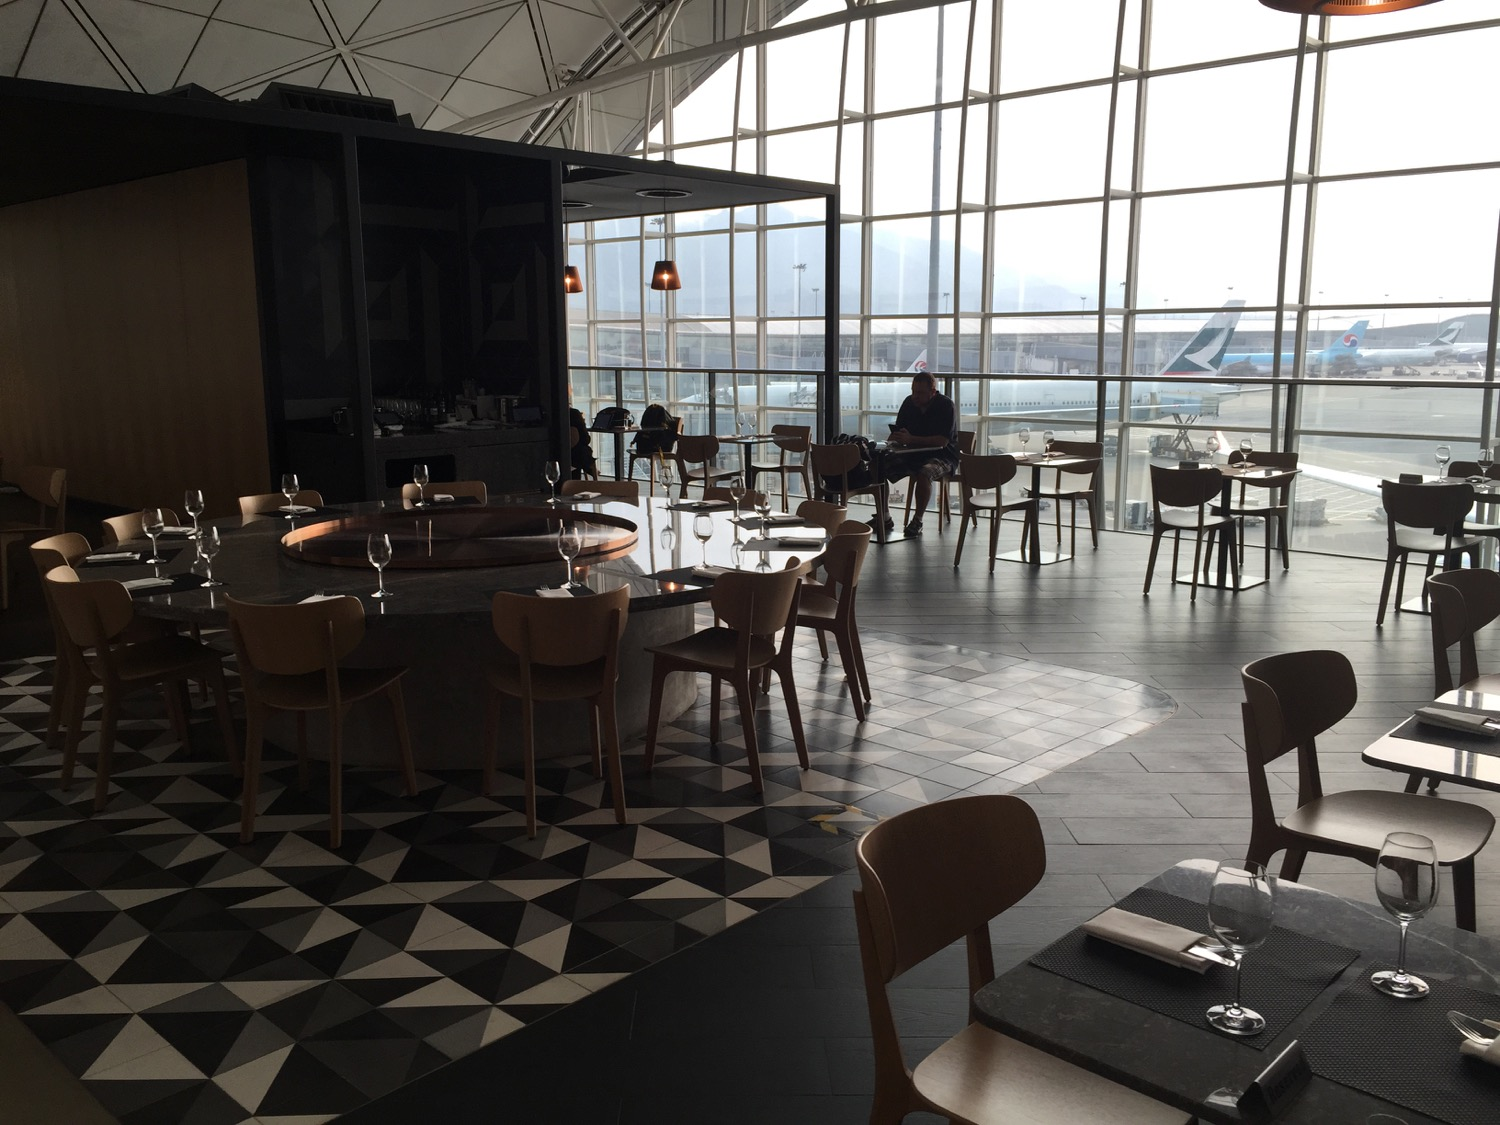 Qantas Lounge Review Hong Kong HKG - 7